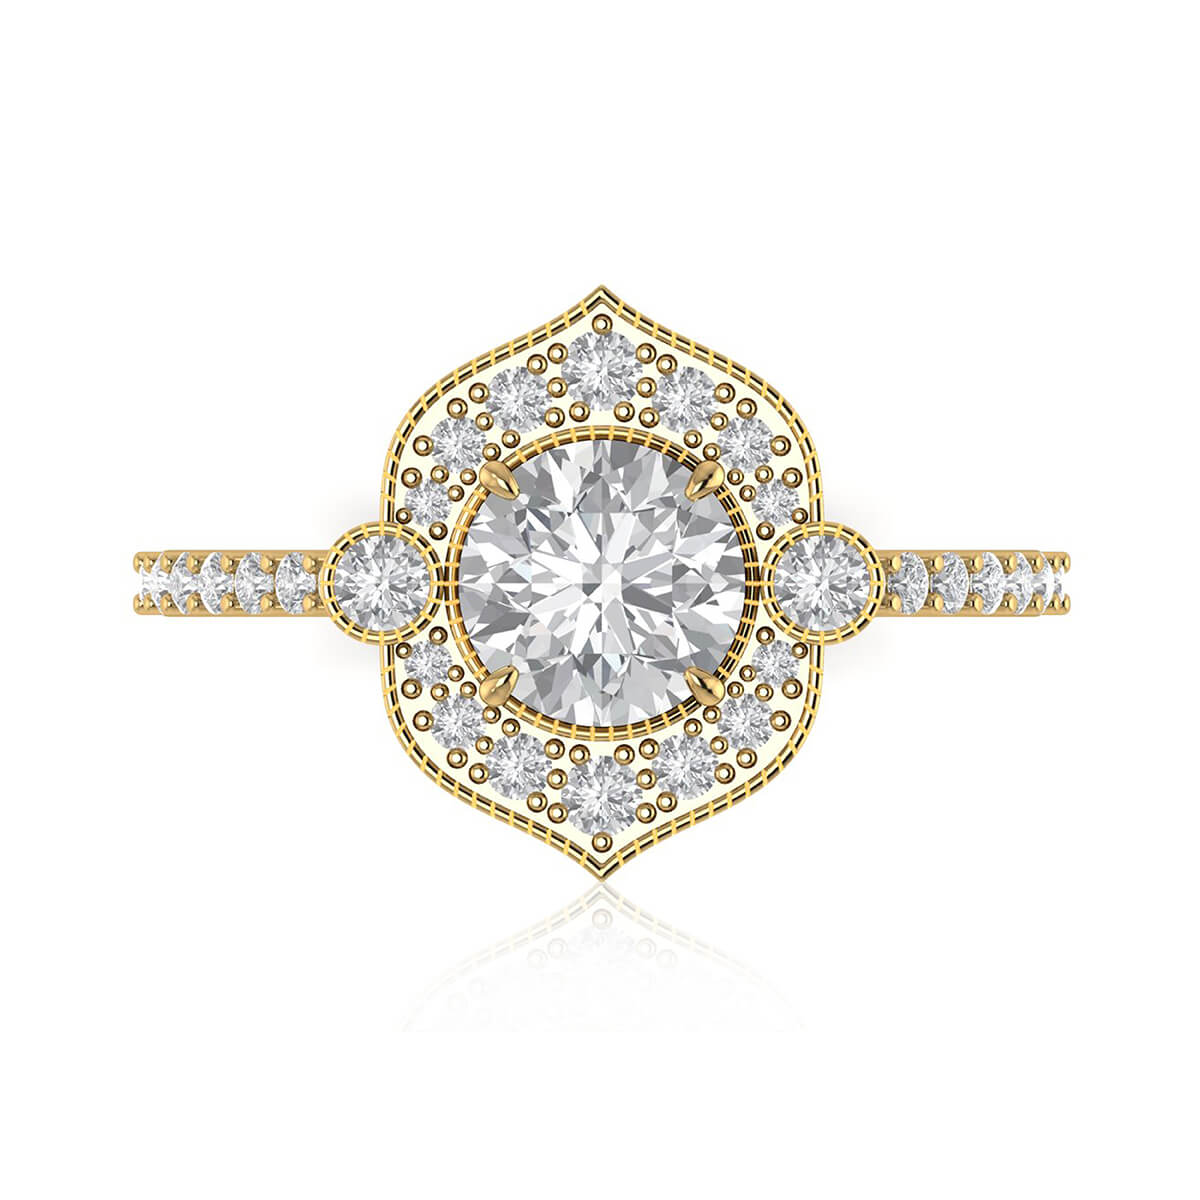 The Power of Love Diamond Ring